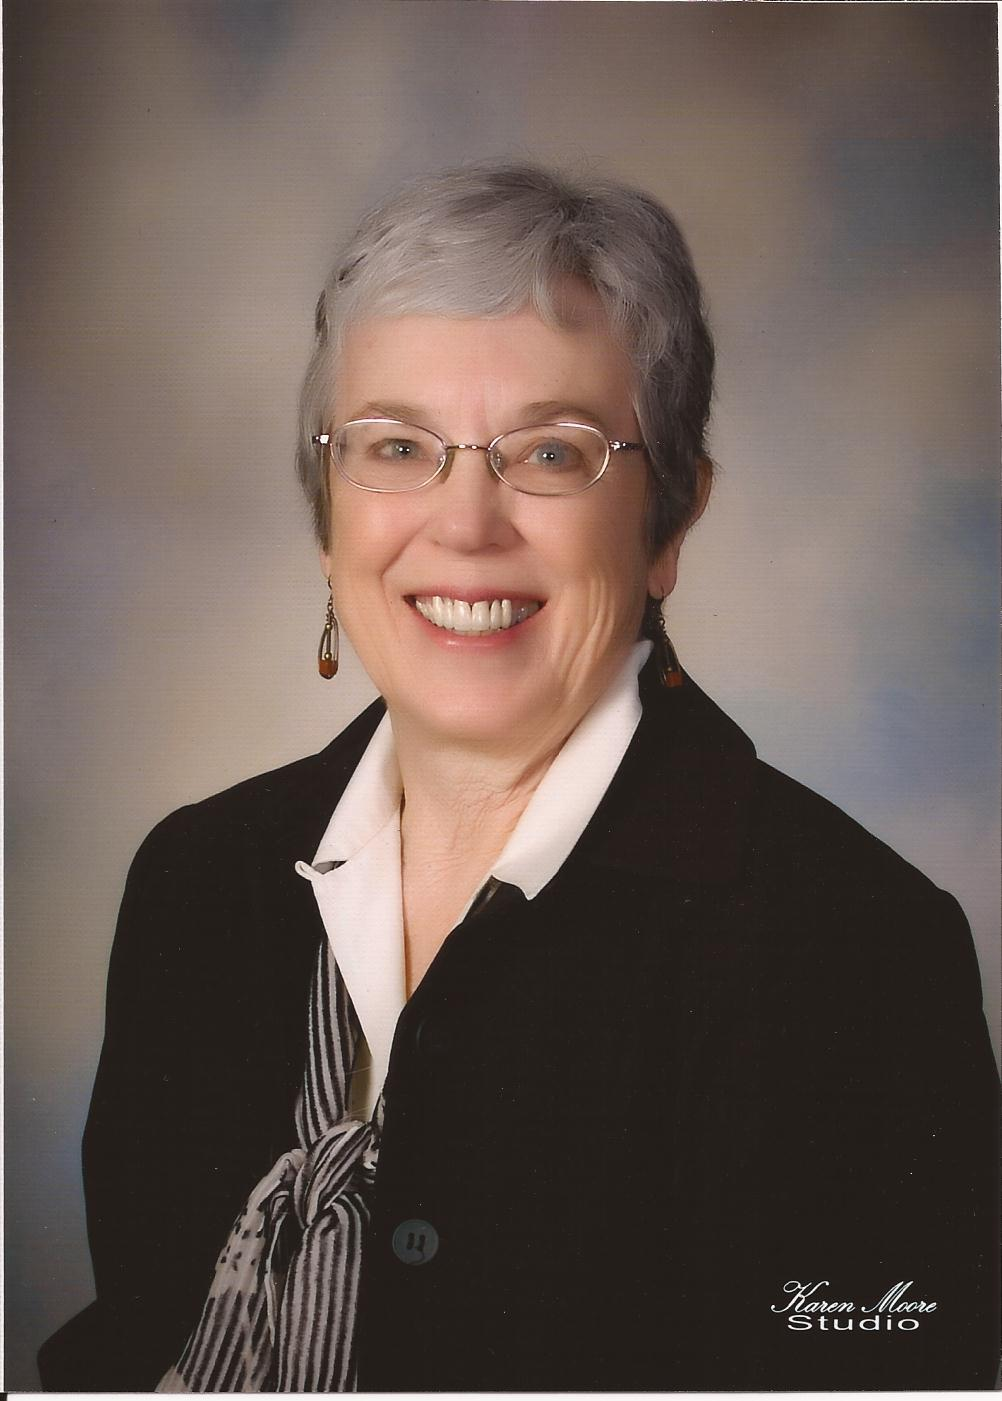 Dr. Virginia Ann Dell – Oklahoma School of Science and Mathematics